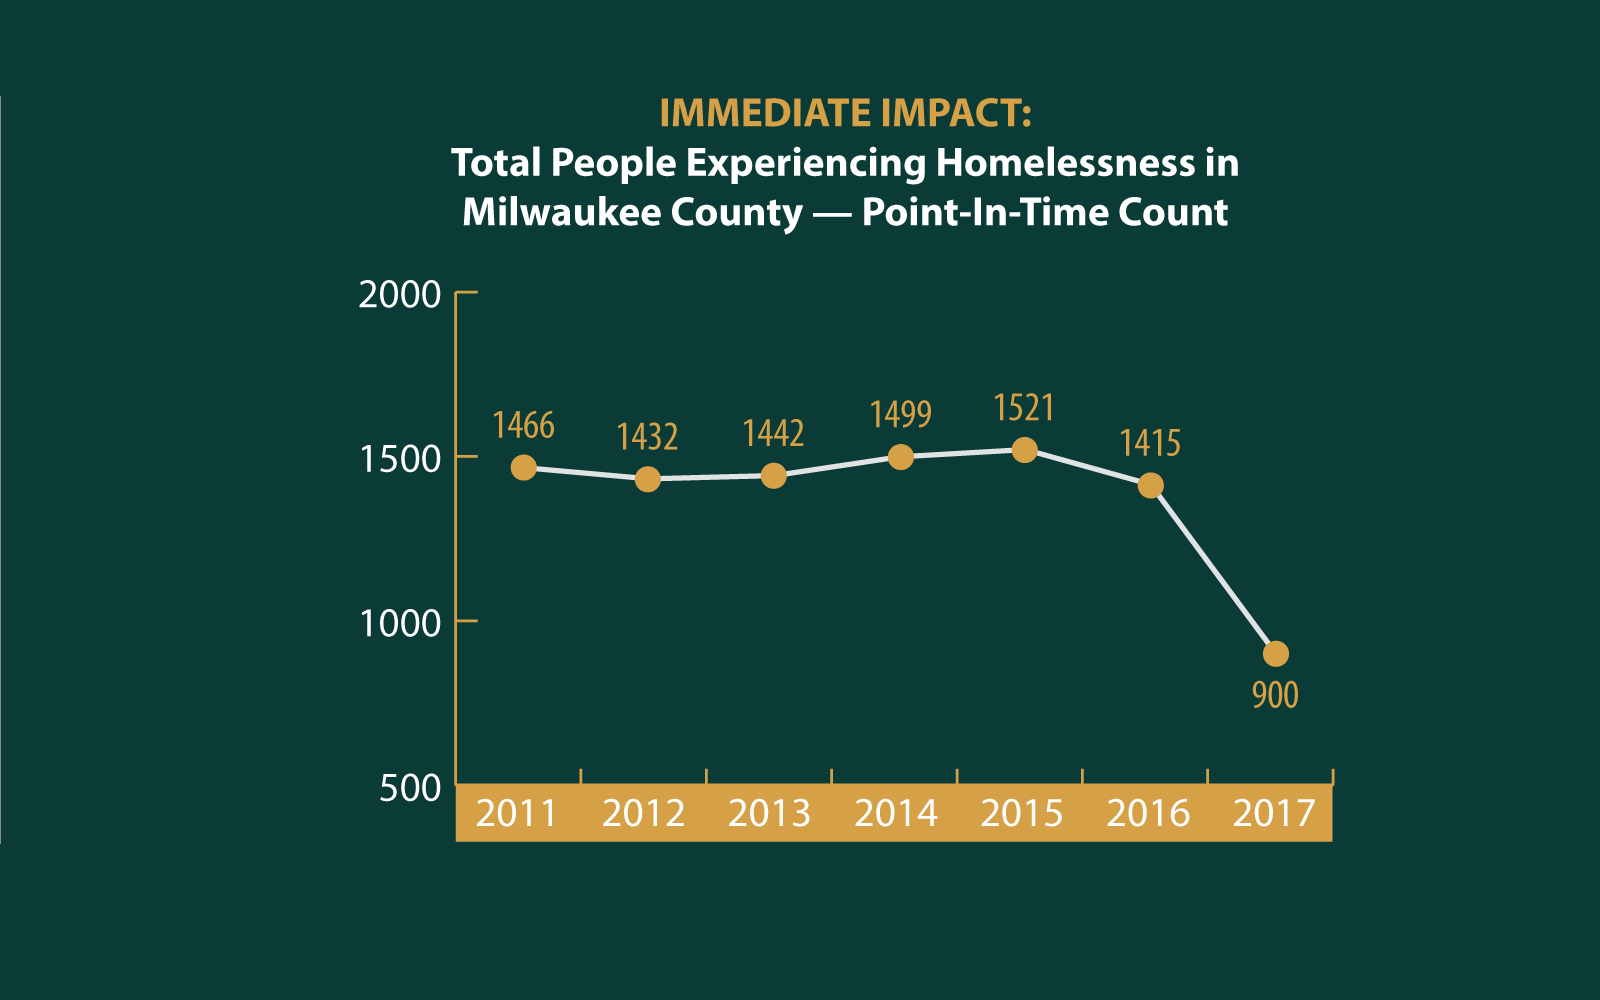 Total People Experiencing Homelessness in Milwaukee County - Point-In-Time Count